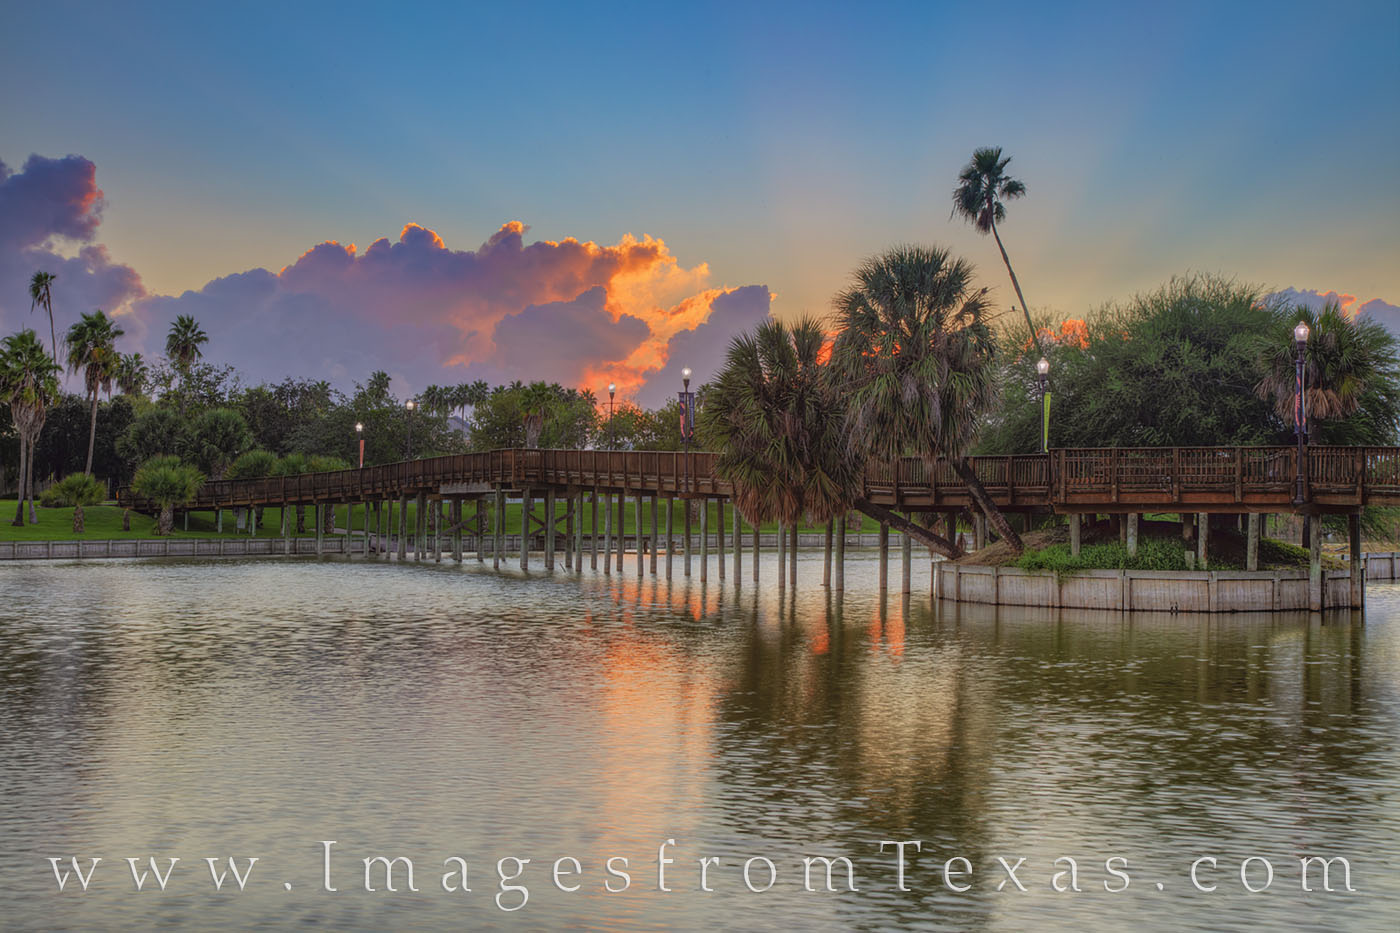 brownsville, south texas, resaca, wooden bridge, sunrise, dawn, texas coast, morning, texas southmost college, photo